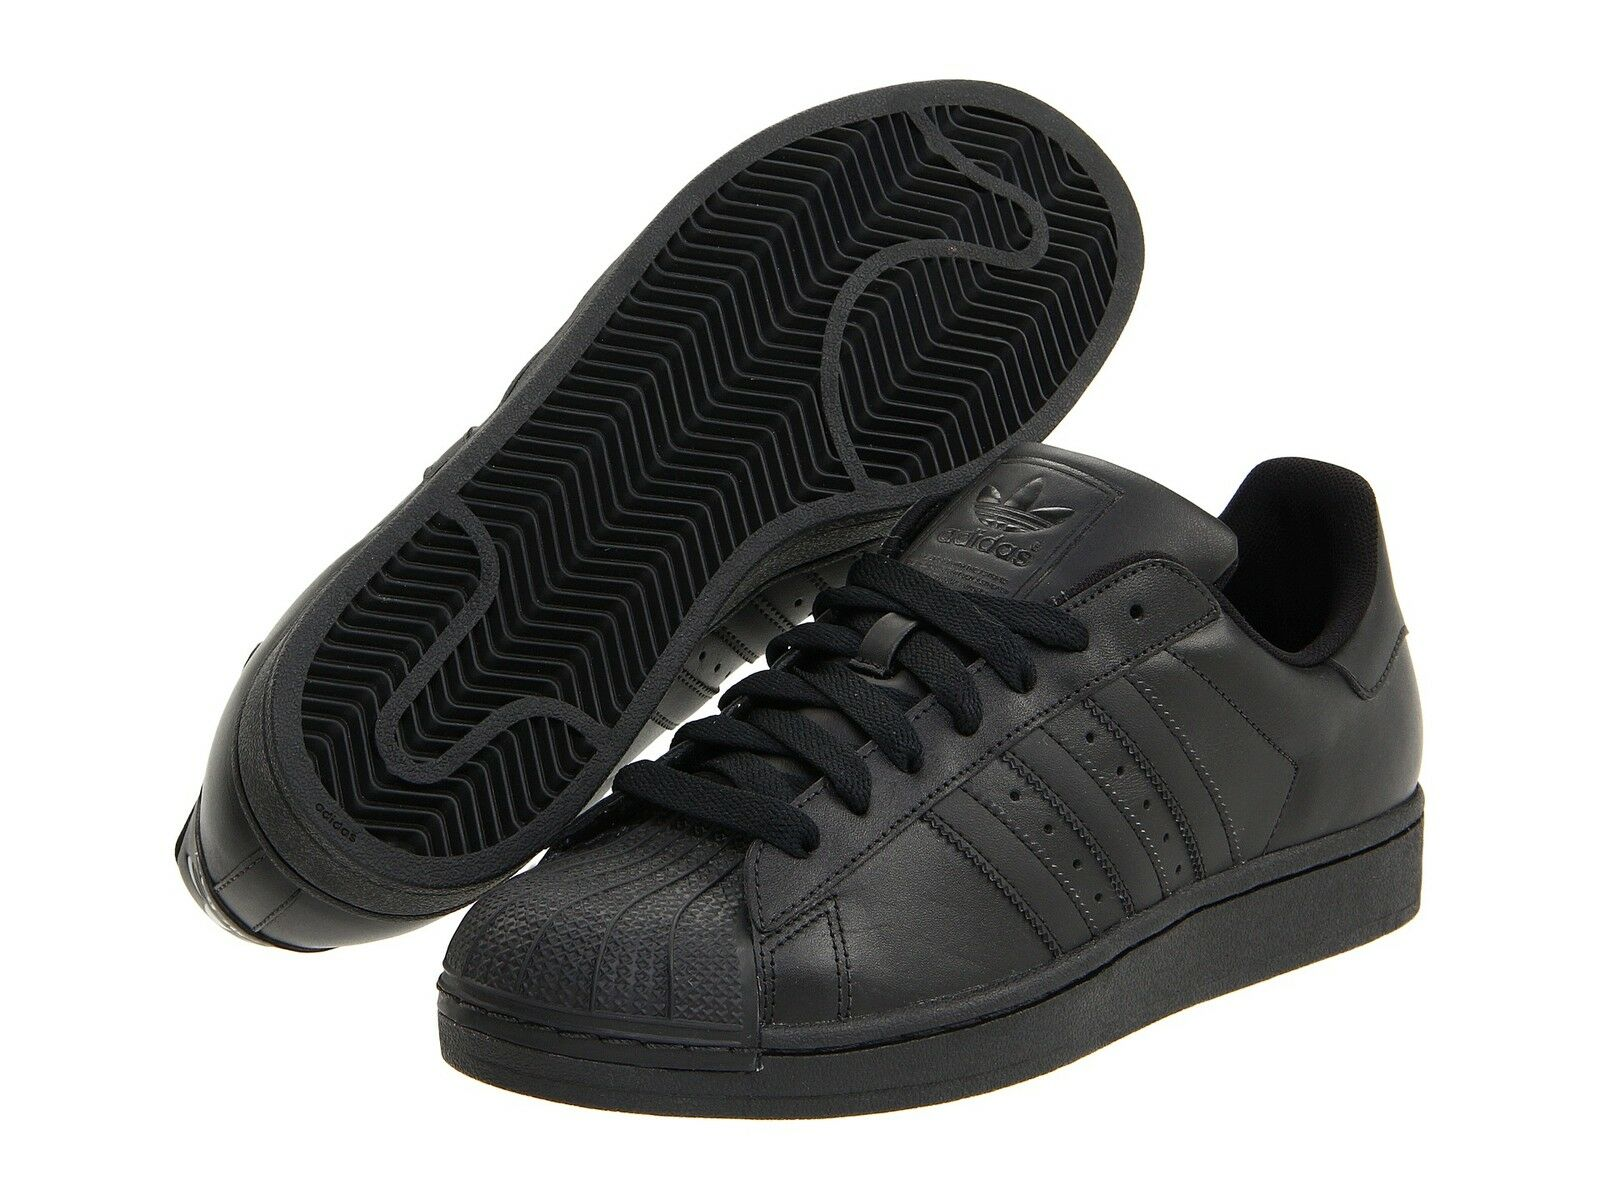 ADIDAS SUPERSTAR CASUAL 2 II ORIGINALS MEN S CASUAL SUPERSTAR BASKETBALL SHOES  ALL BLACK G14748 16f964 8be96fda1